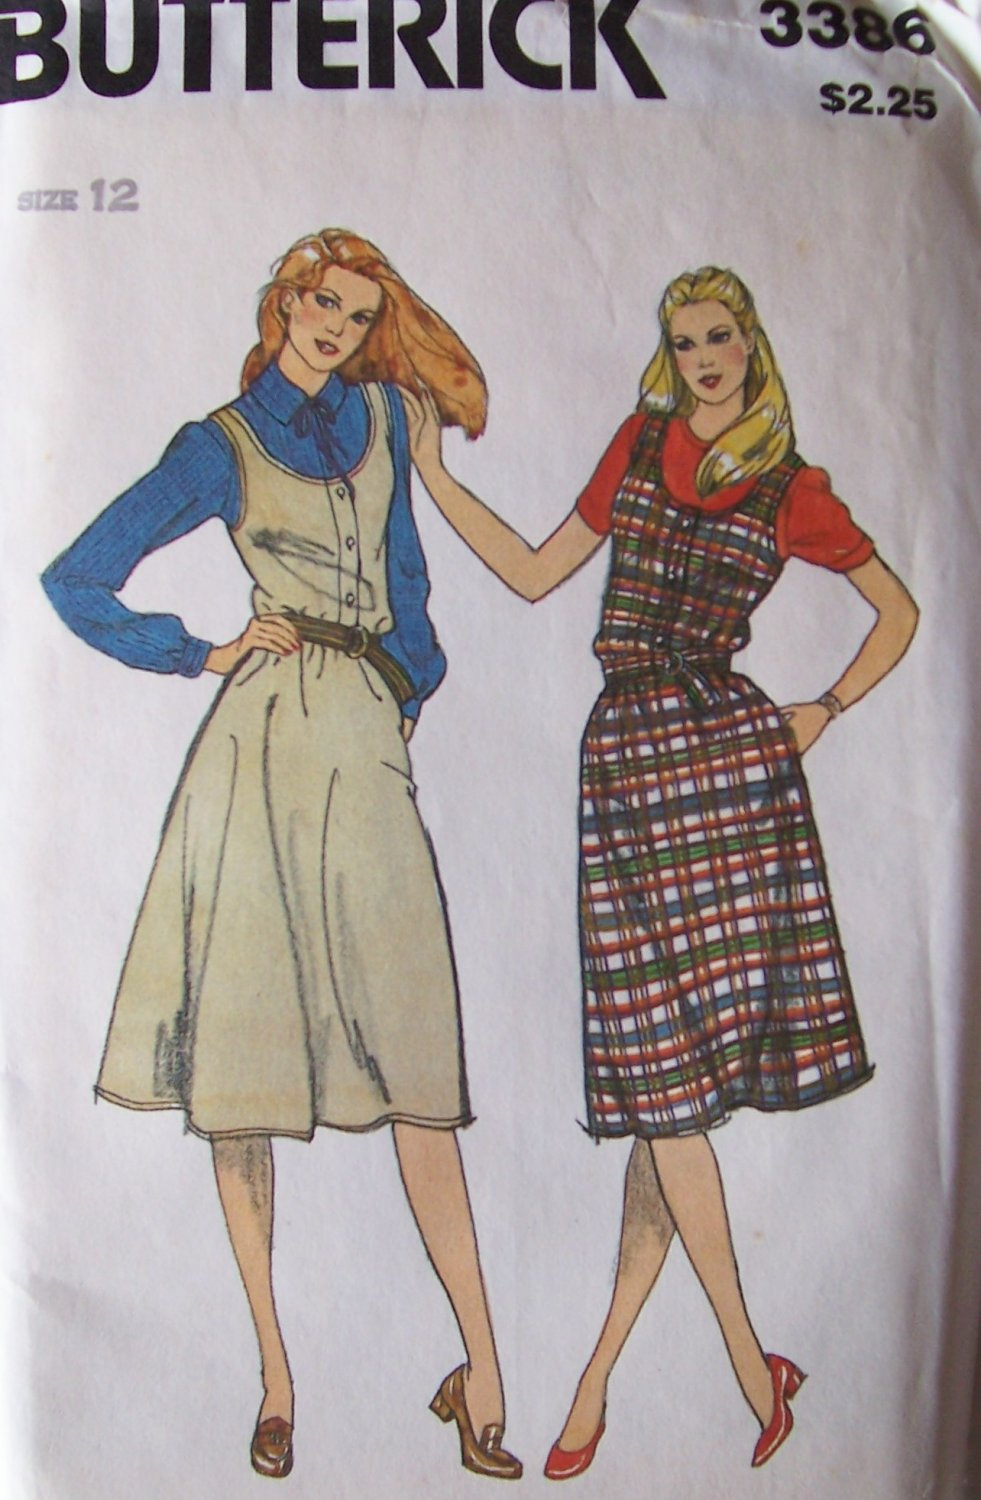 Retro 80s Butterick 3386 Flared Jumper Dress Pattern Scoop Neck Uncut Size 12 Bust 34